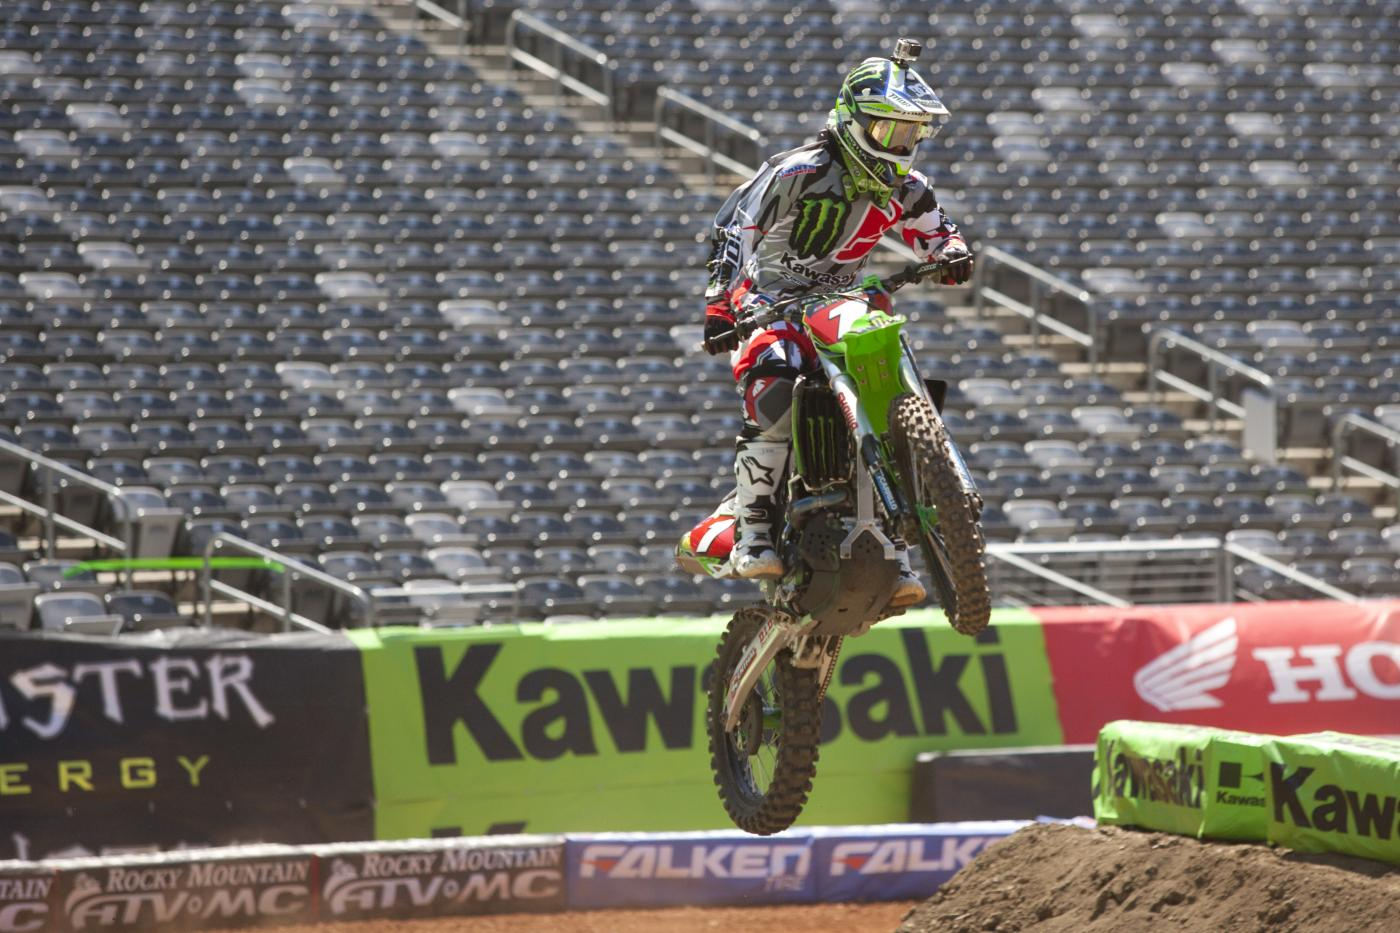 Ryan Villopoto looks to clinch his fourth straight SX title Saturday.